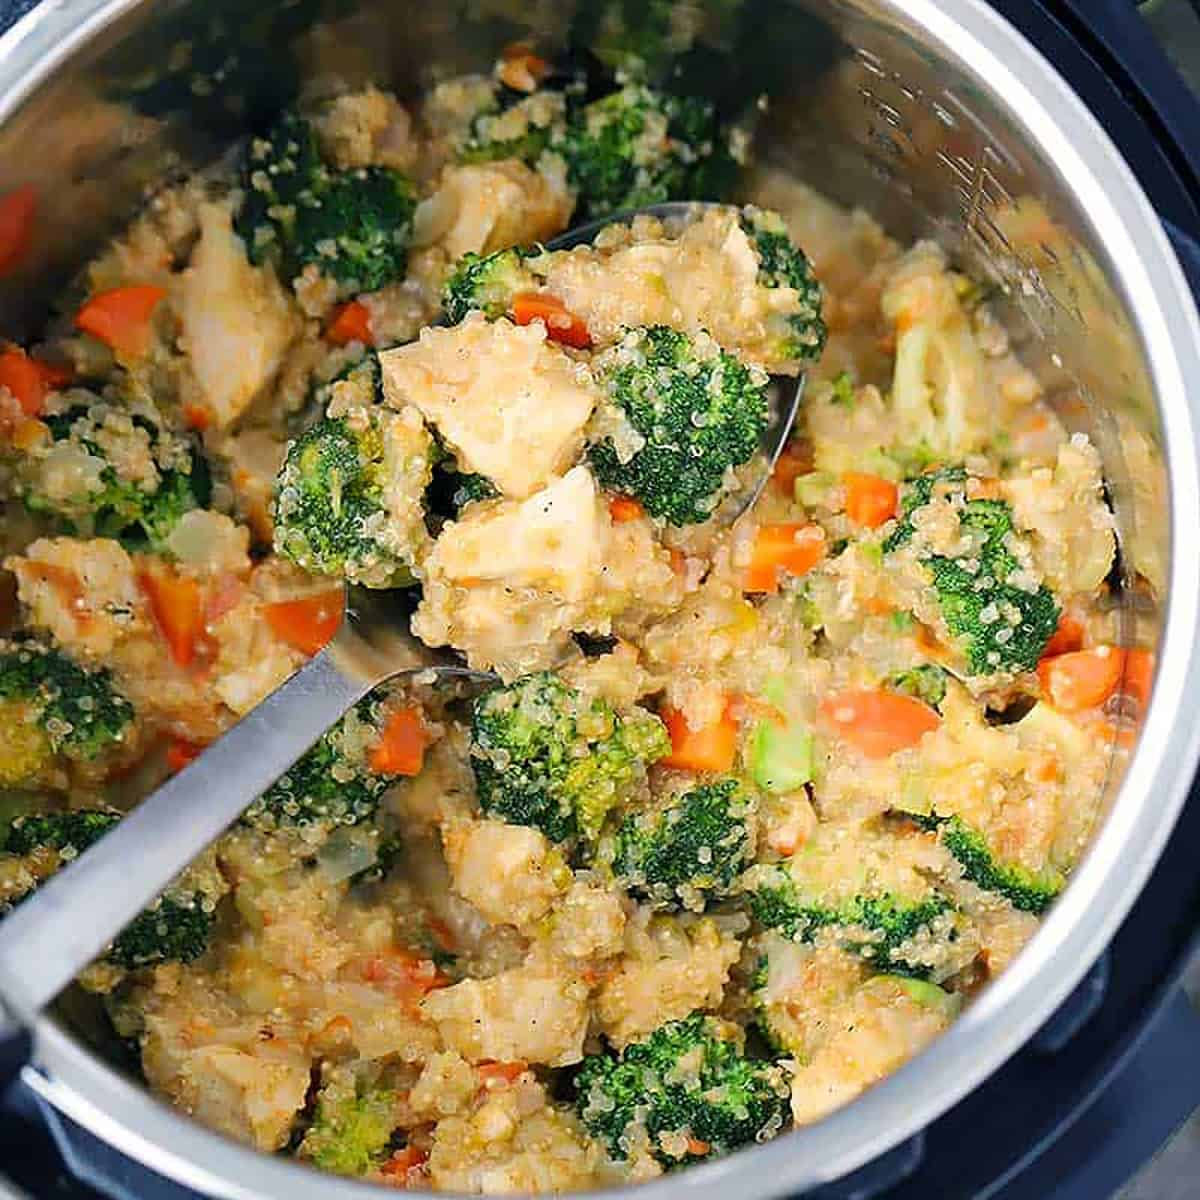 Instant Pot Chicken Broccoli And Quinoa With Cheese Bowl Of Delicious